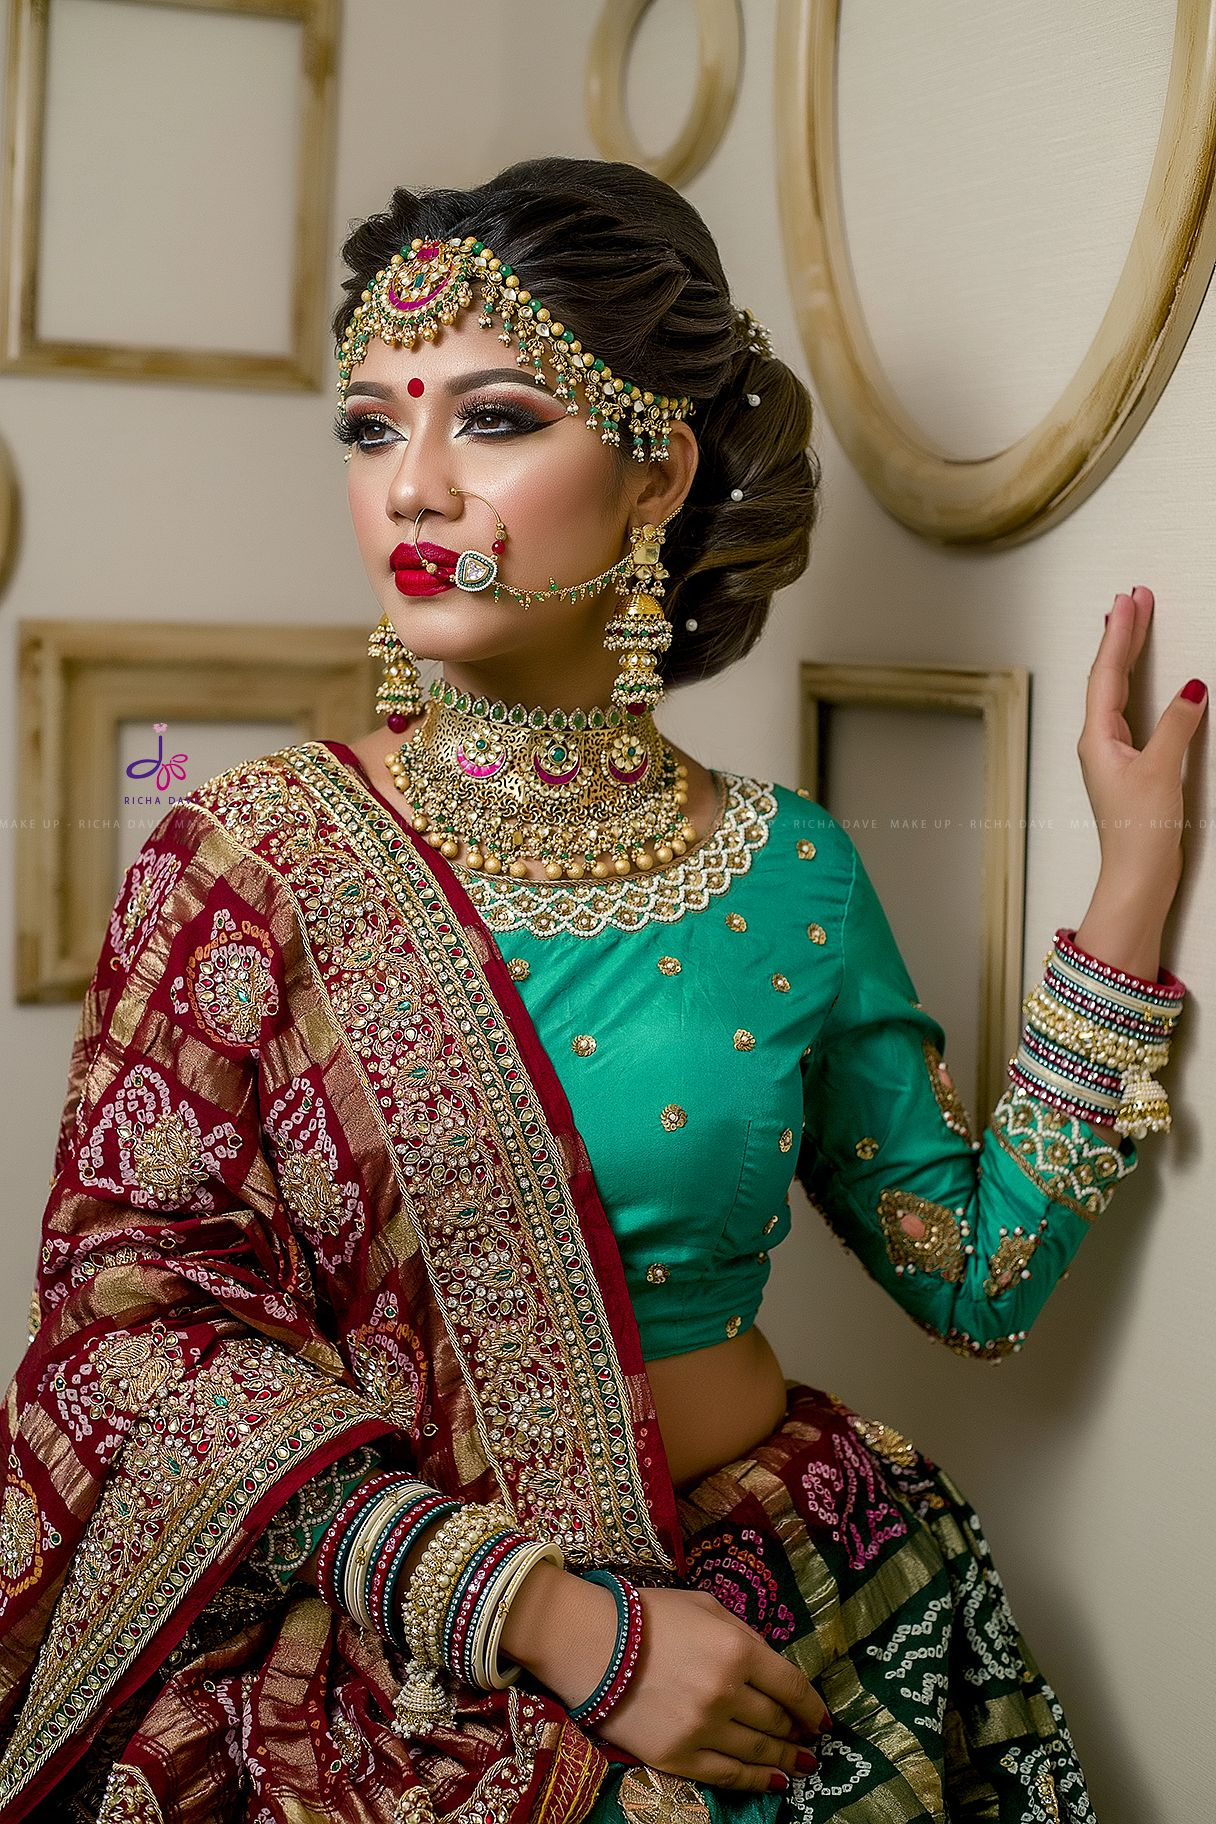 makeup and hairstyle workshop held at jasmine beauty salon